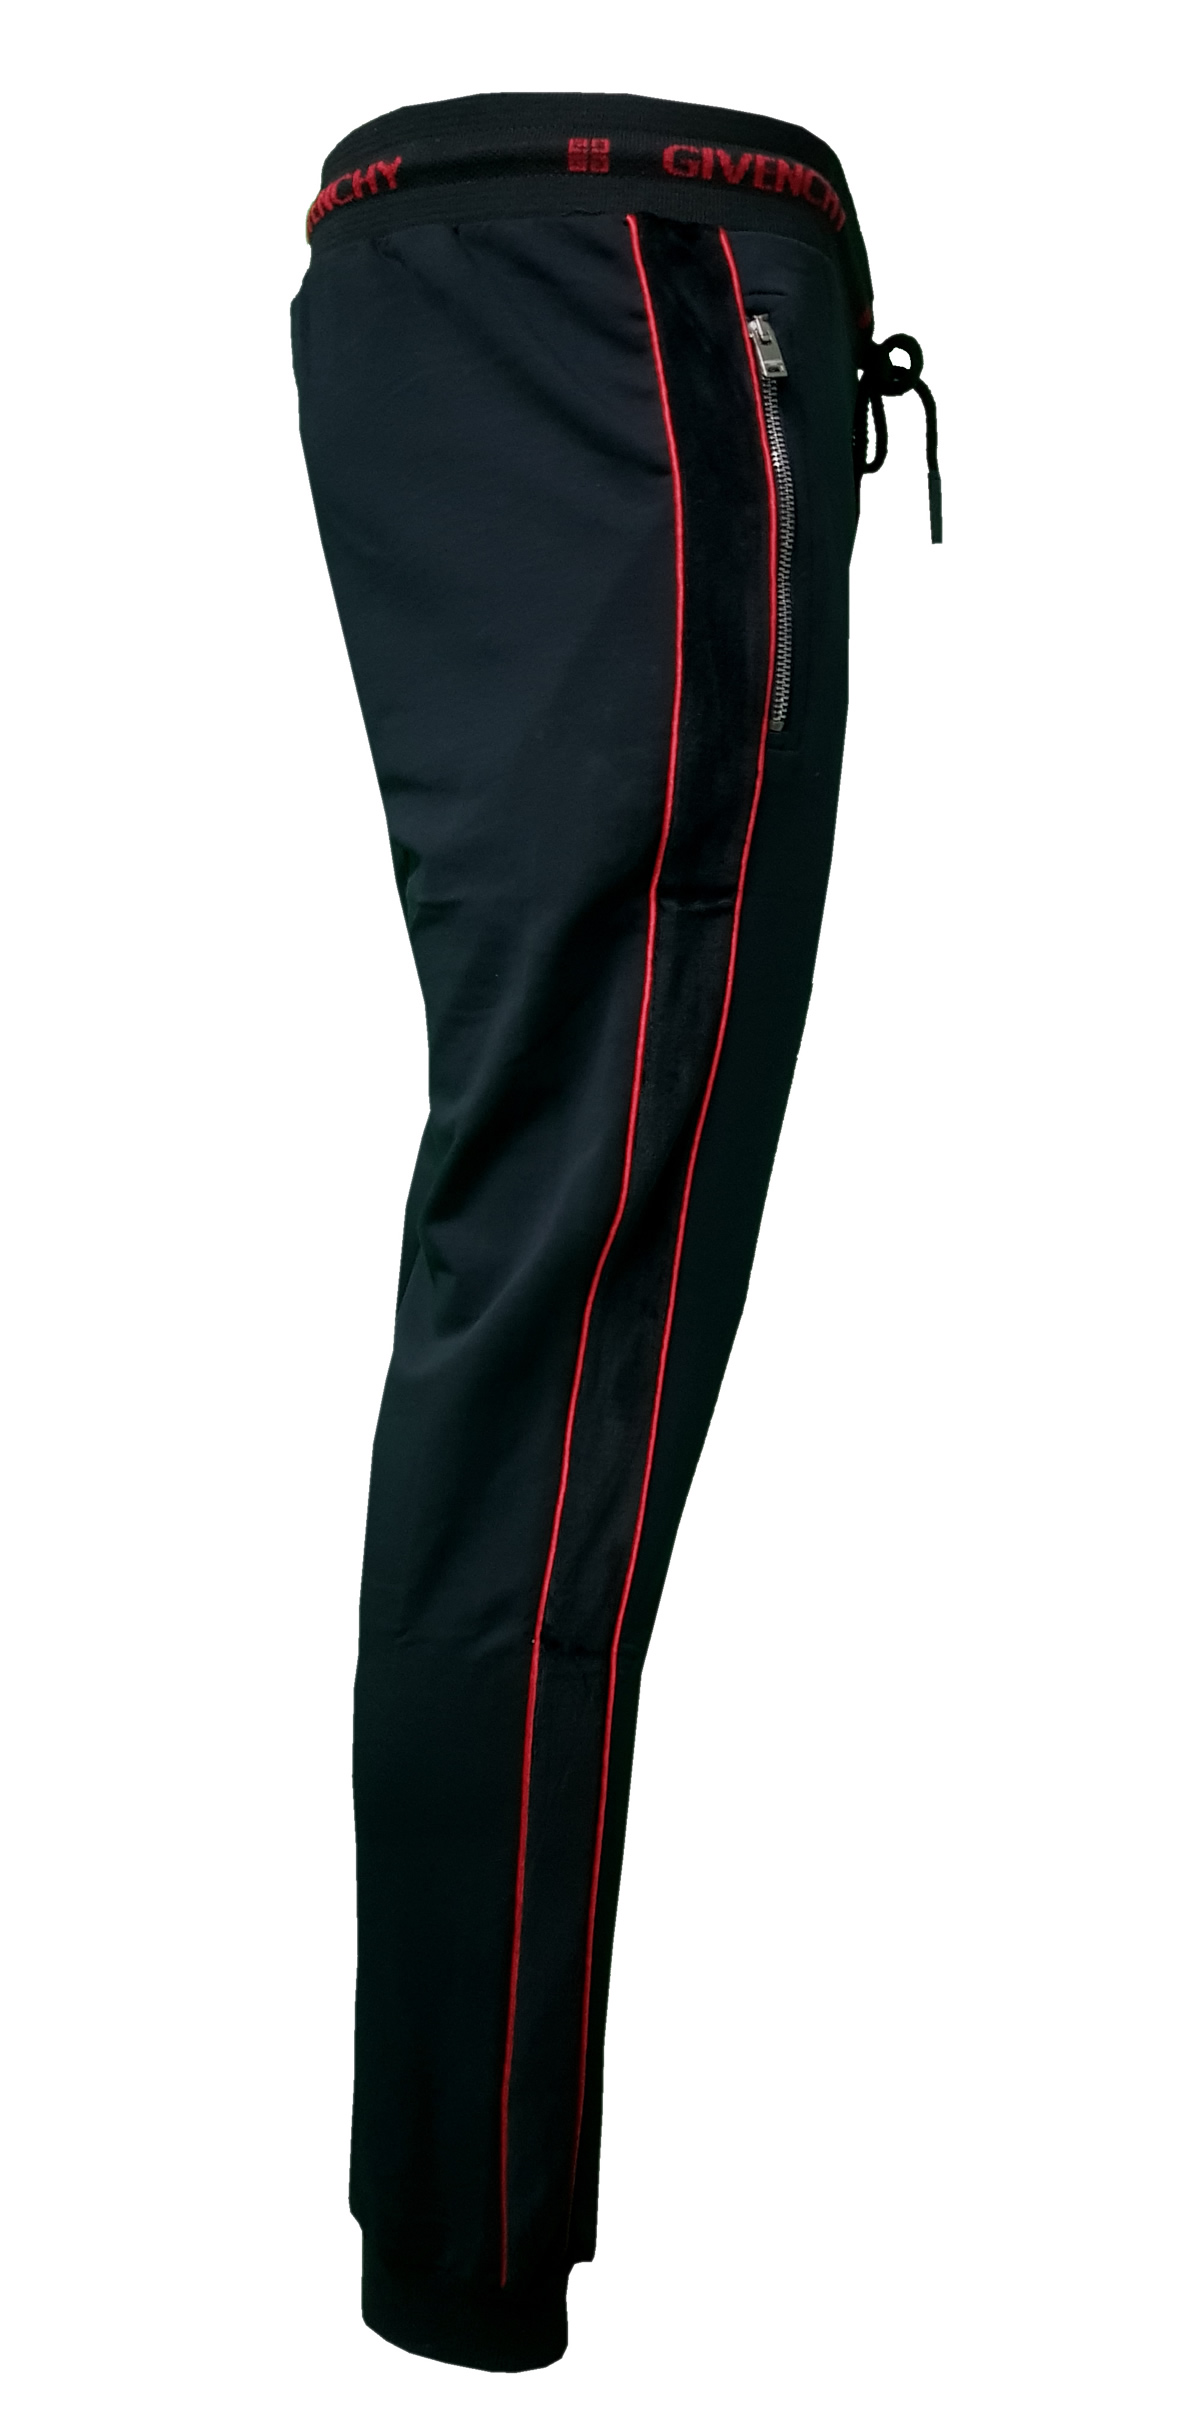 a5c7a2240cb2a Givenchy Men s Complete 2 Piece Top and Bottoms Tracksuit in Black Red -  Bottoms Right